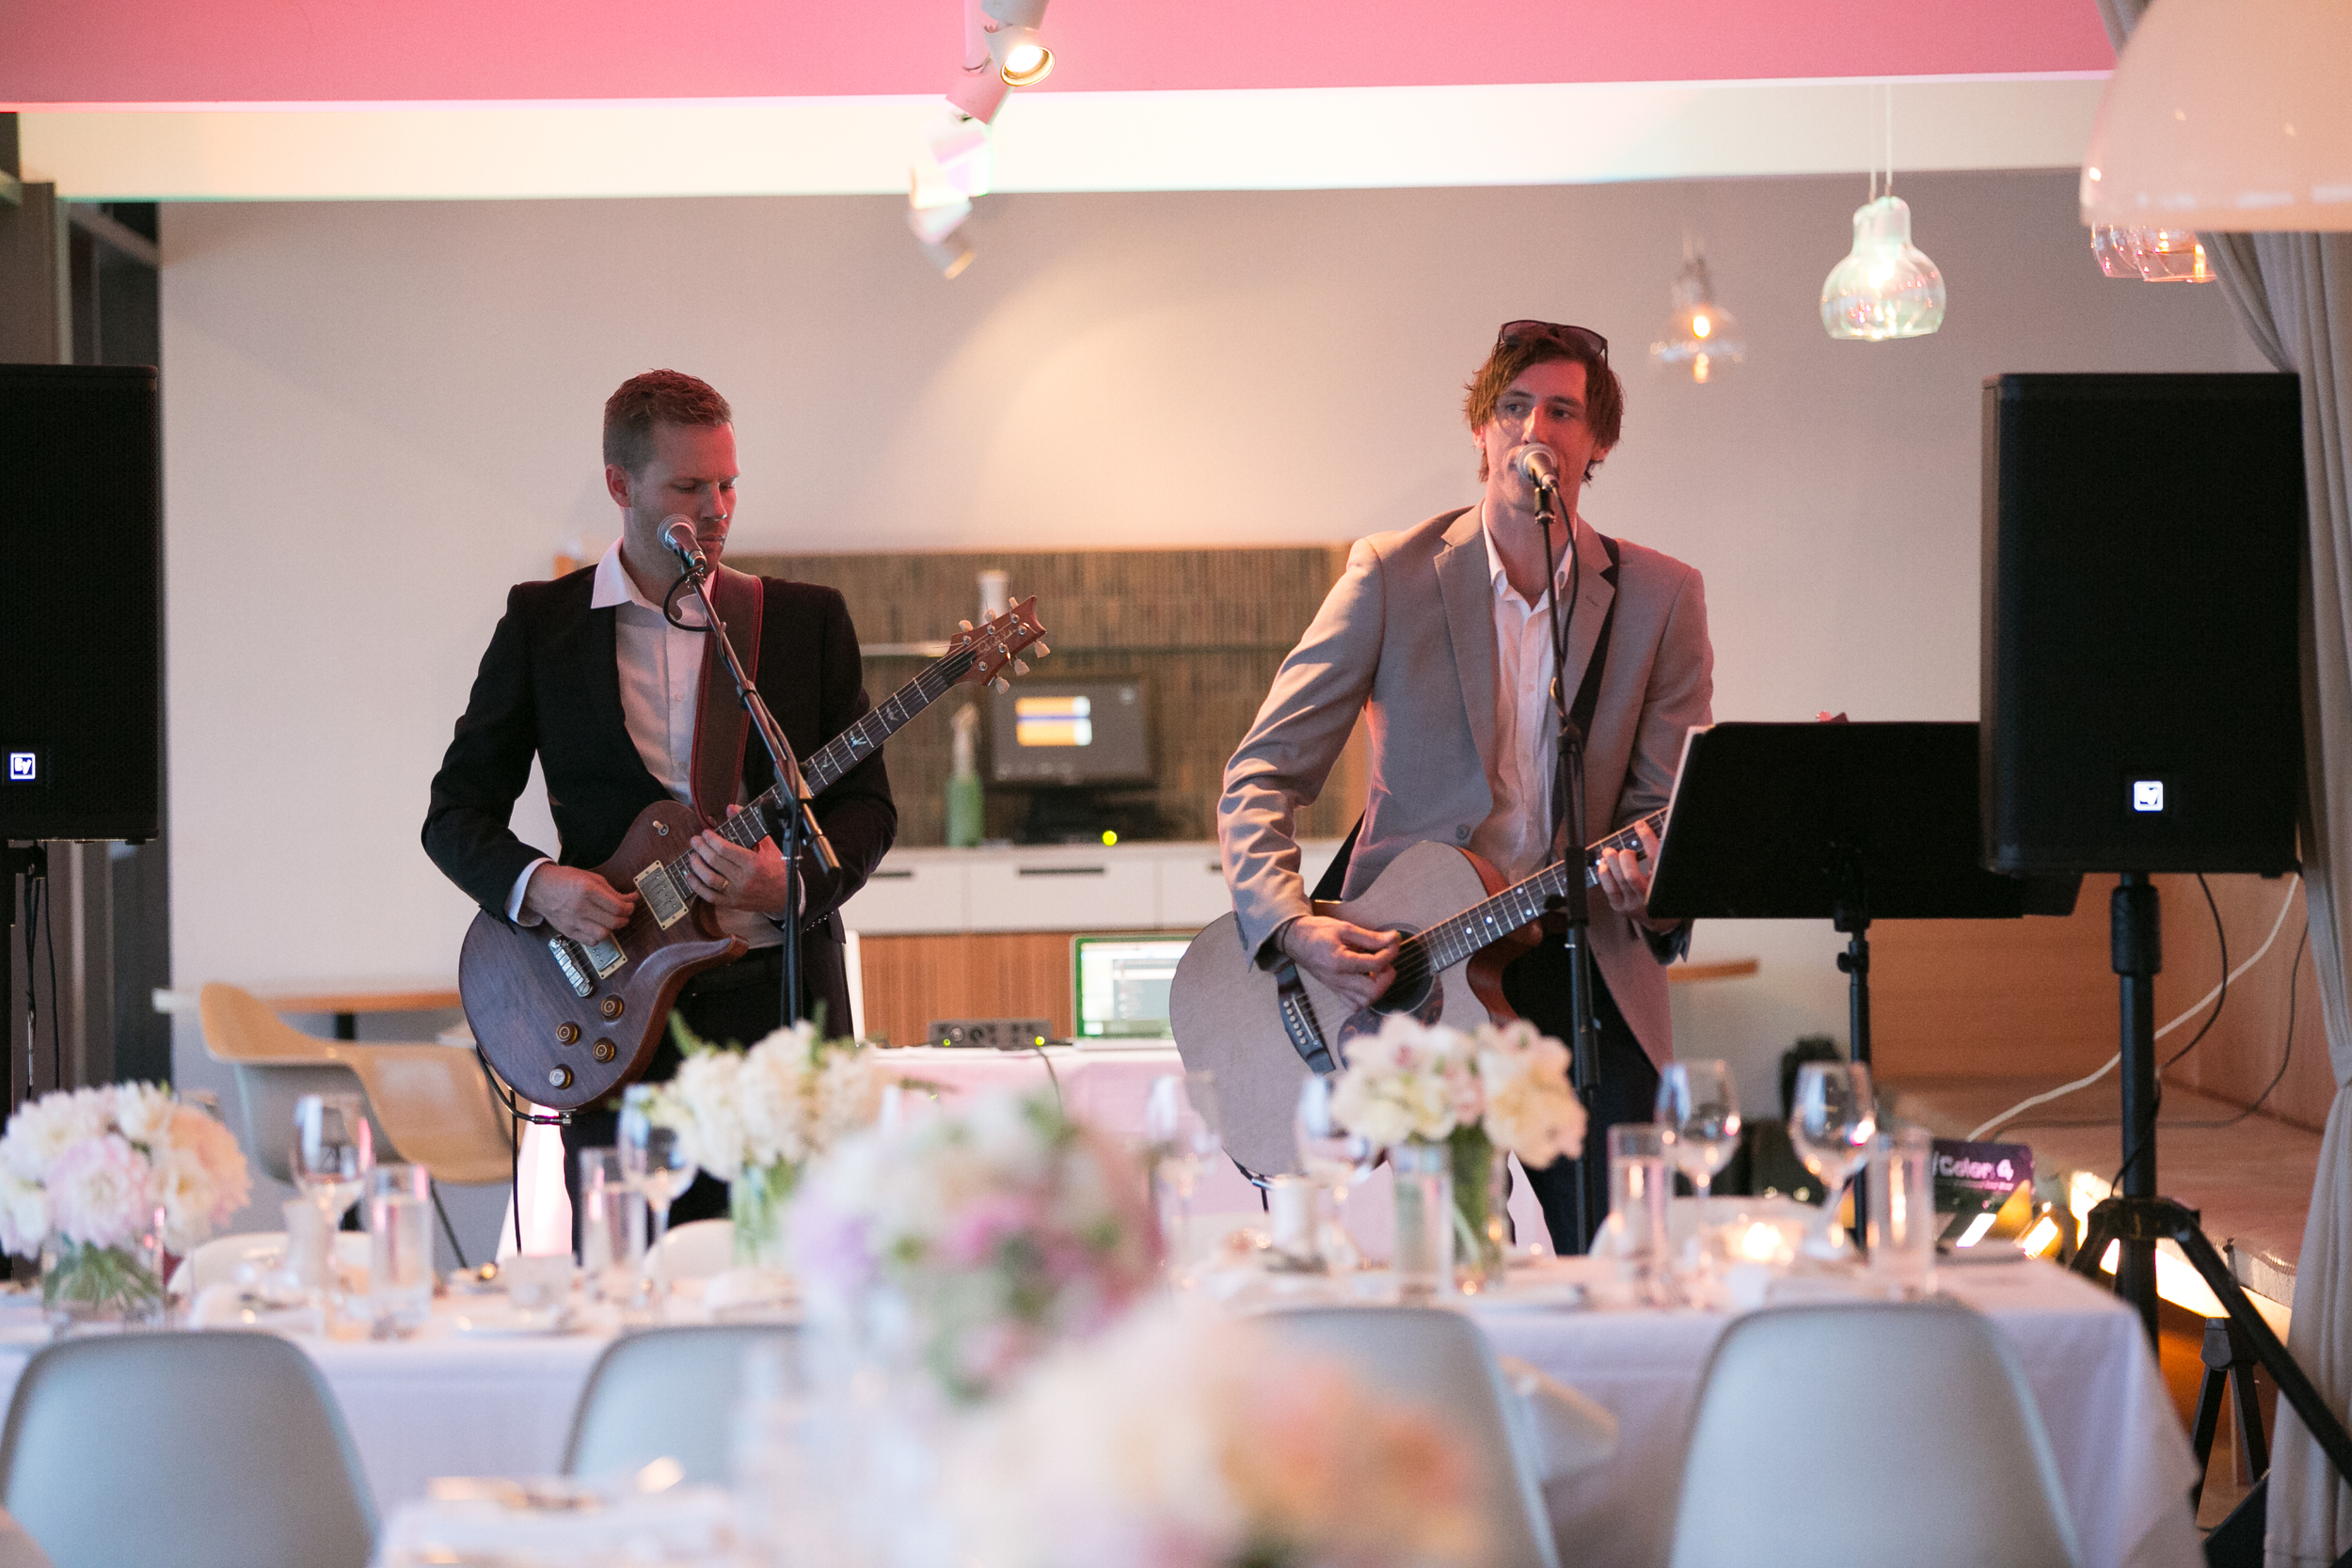 Hype Duo  are not only incredible musicians but they compose the most amazing mash sets to suit the vibe of your event. They read the audience perfectly and get everyone in a party mood when the time is right. Don't go past these guys when booking your wedding or party. Offering a  10% discount for all Jazzy Photography clients!    www.sydneyduo.com ,  www.hypeband.com.au  and  www.laraparkerkent.com